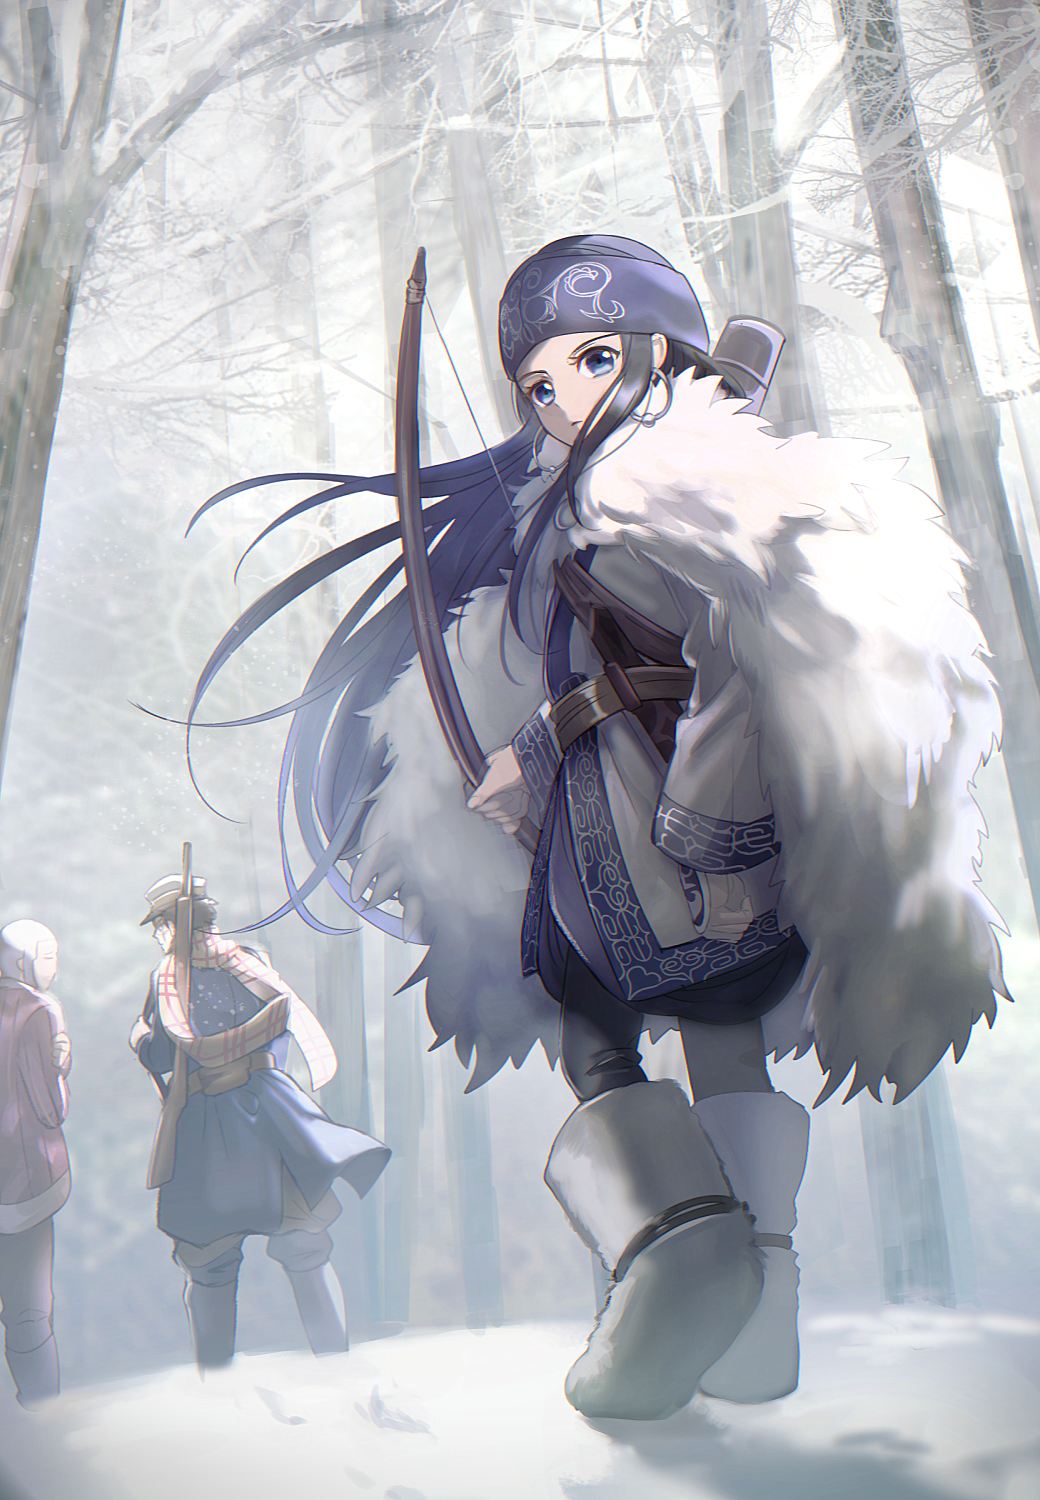 Golden Kamuy, by Pixiv Id 37227084 Anime, Anime images